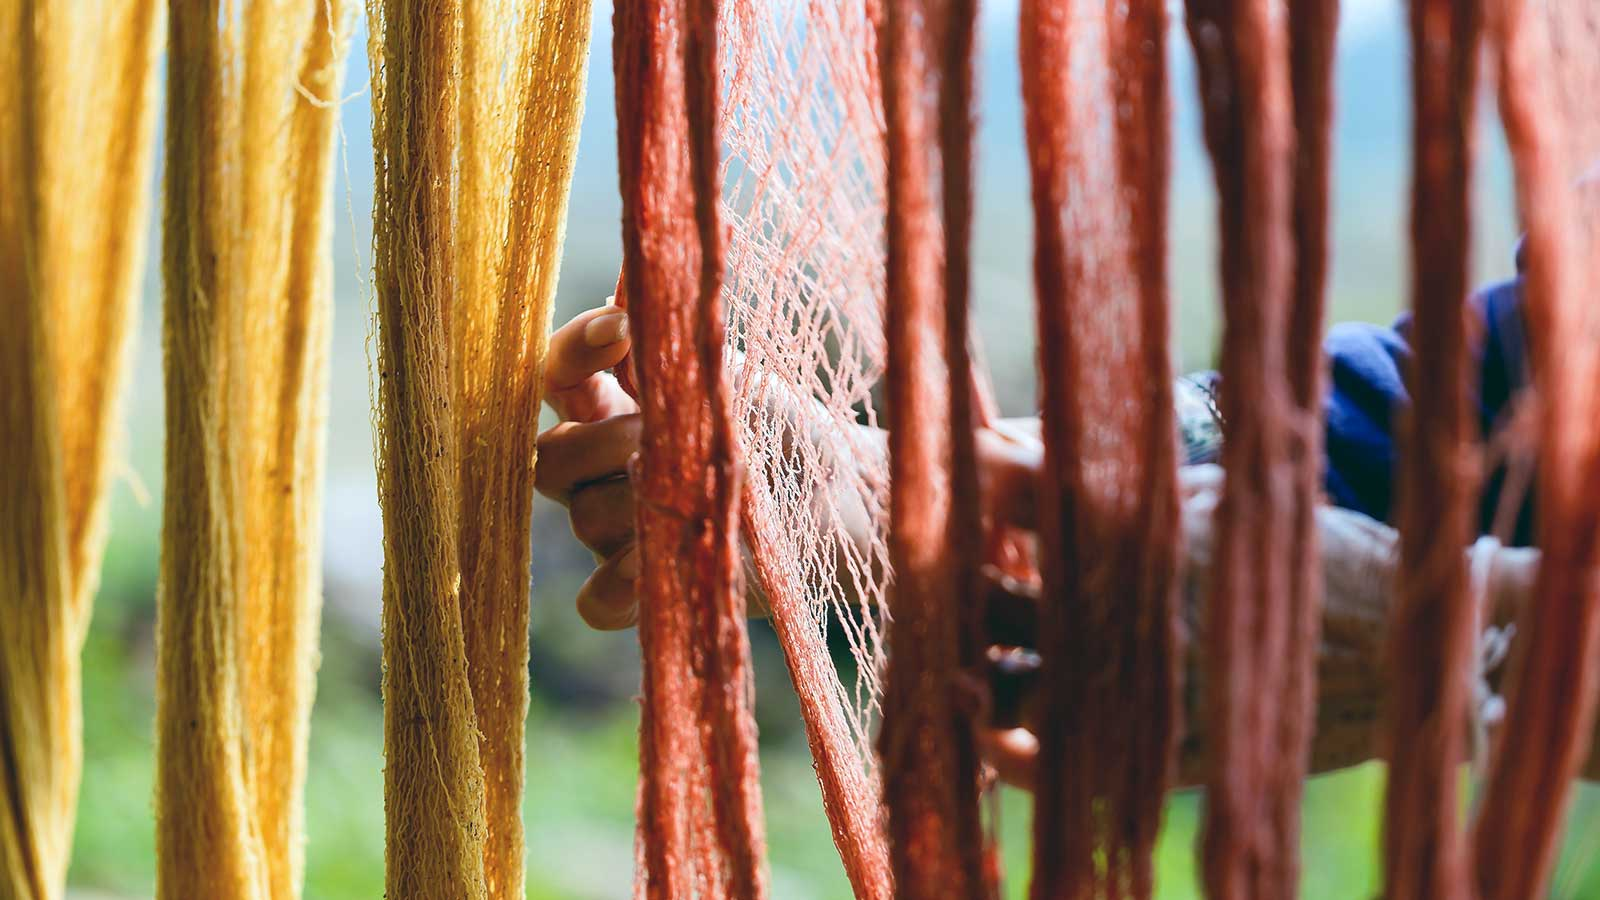 NATURAL DYE: THE WAY WE COLOR